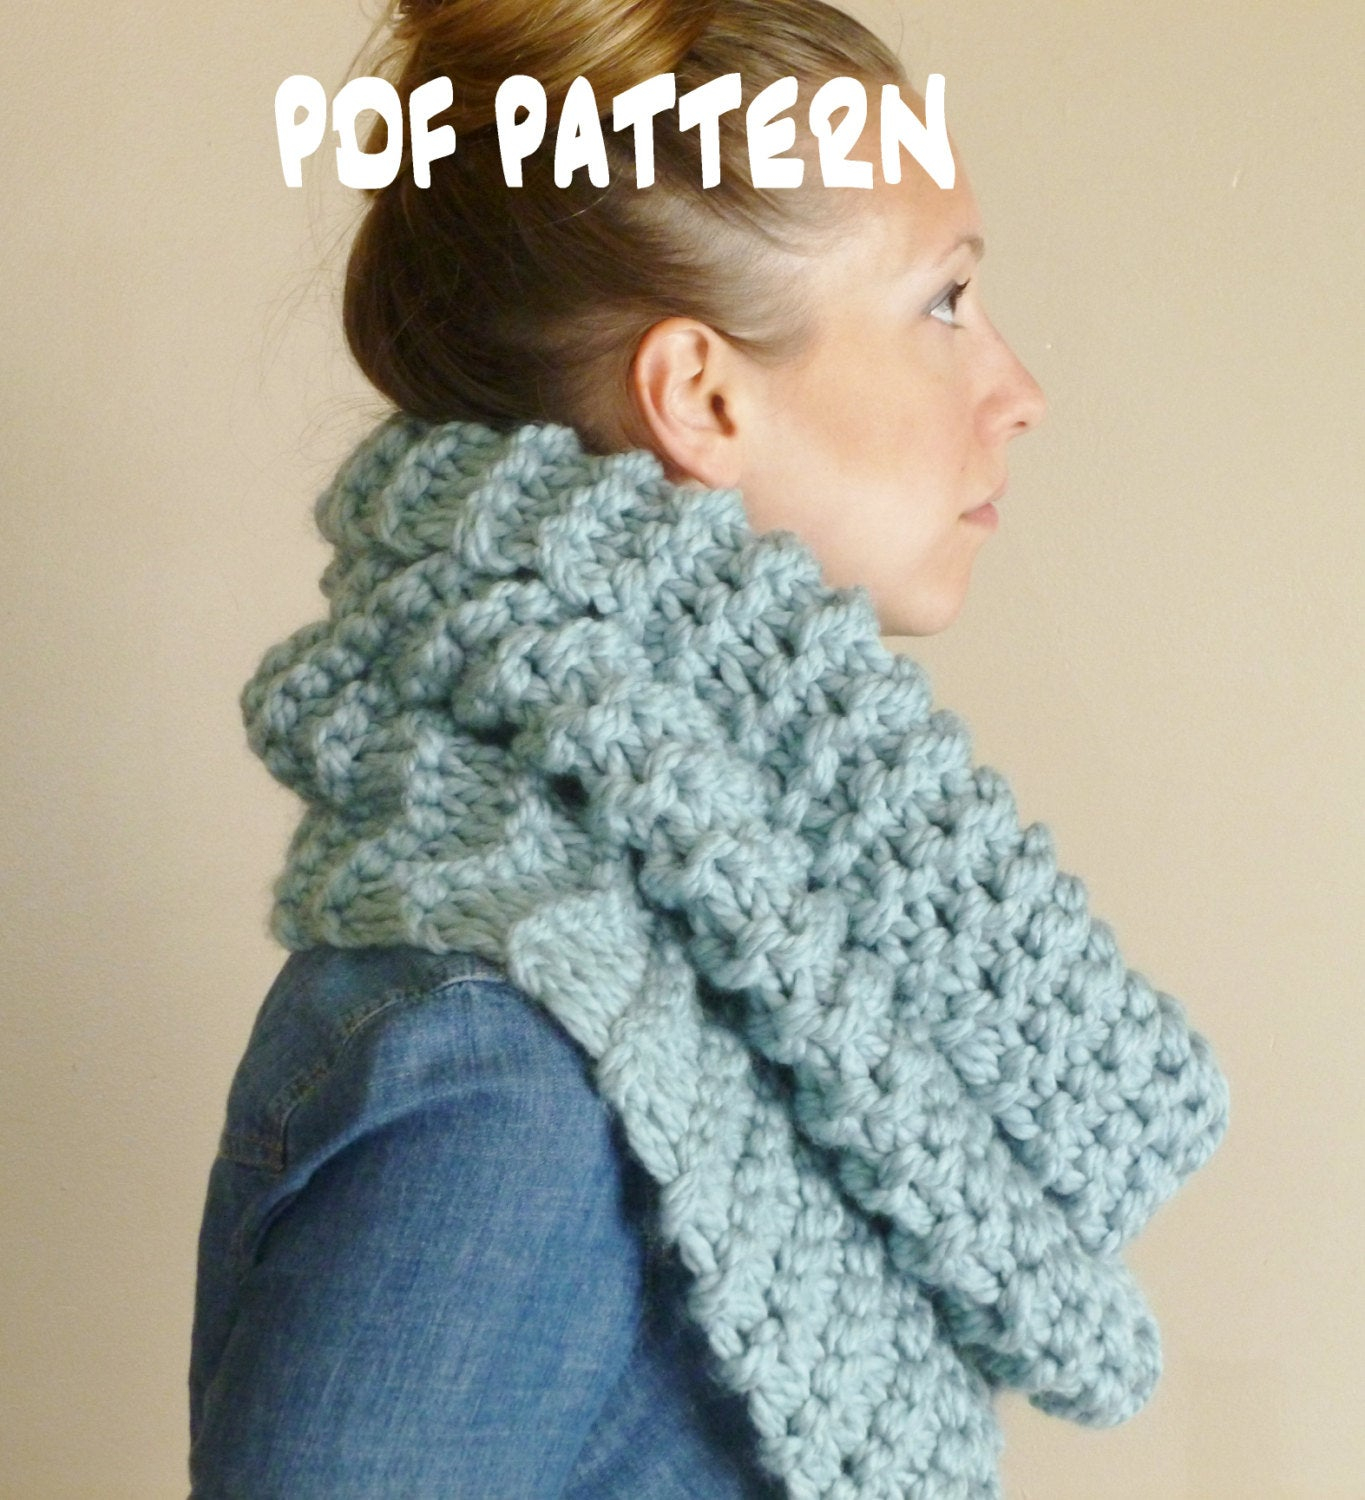 Chunky Knit Infinity Scarf Pattern Chunky Scarf Knitting Pattern The Strasburg Scarf Outlander Inspired Cowl Infinity Scarf Pattern Scarf Patterns Hooded Cowl Pattern